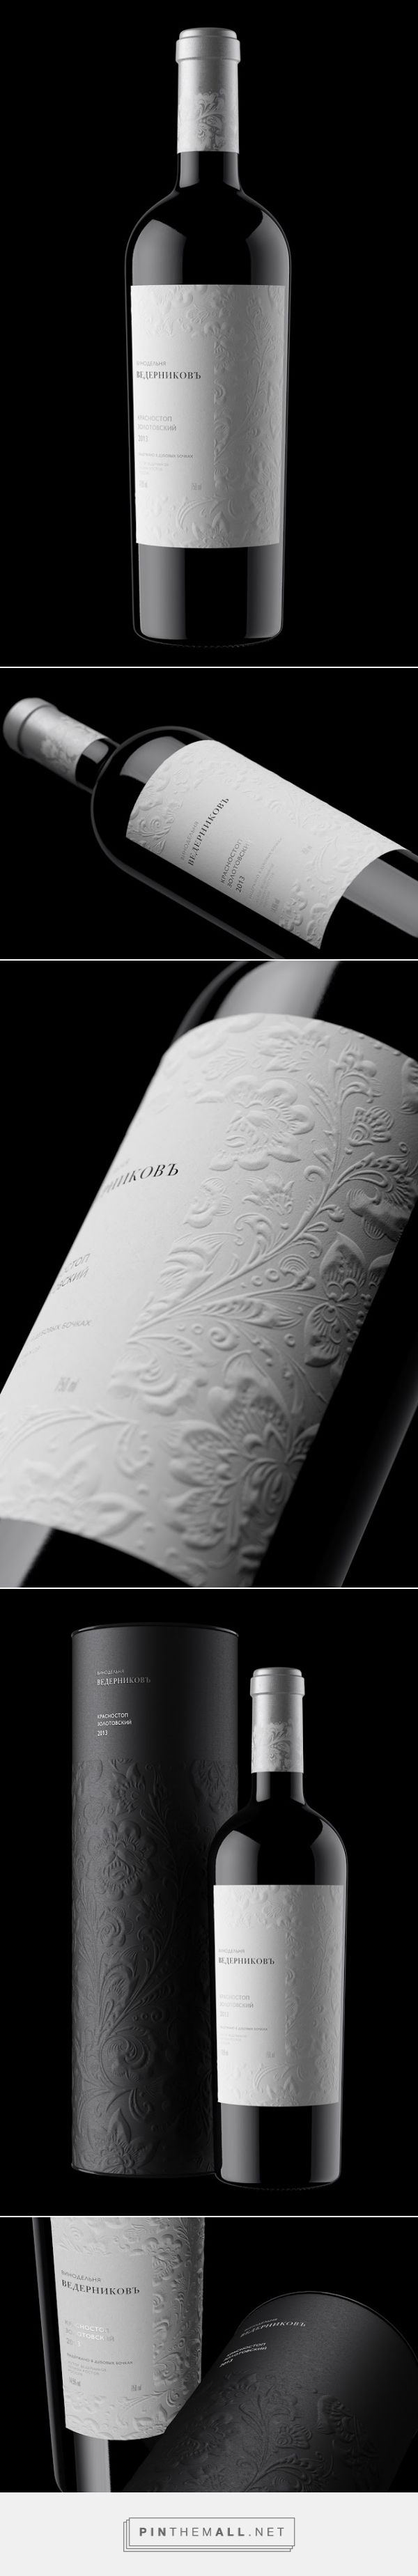 Vedernikov #Wine #packaging #stilovino